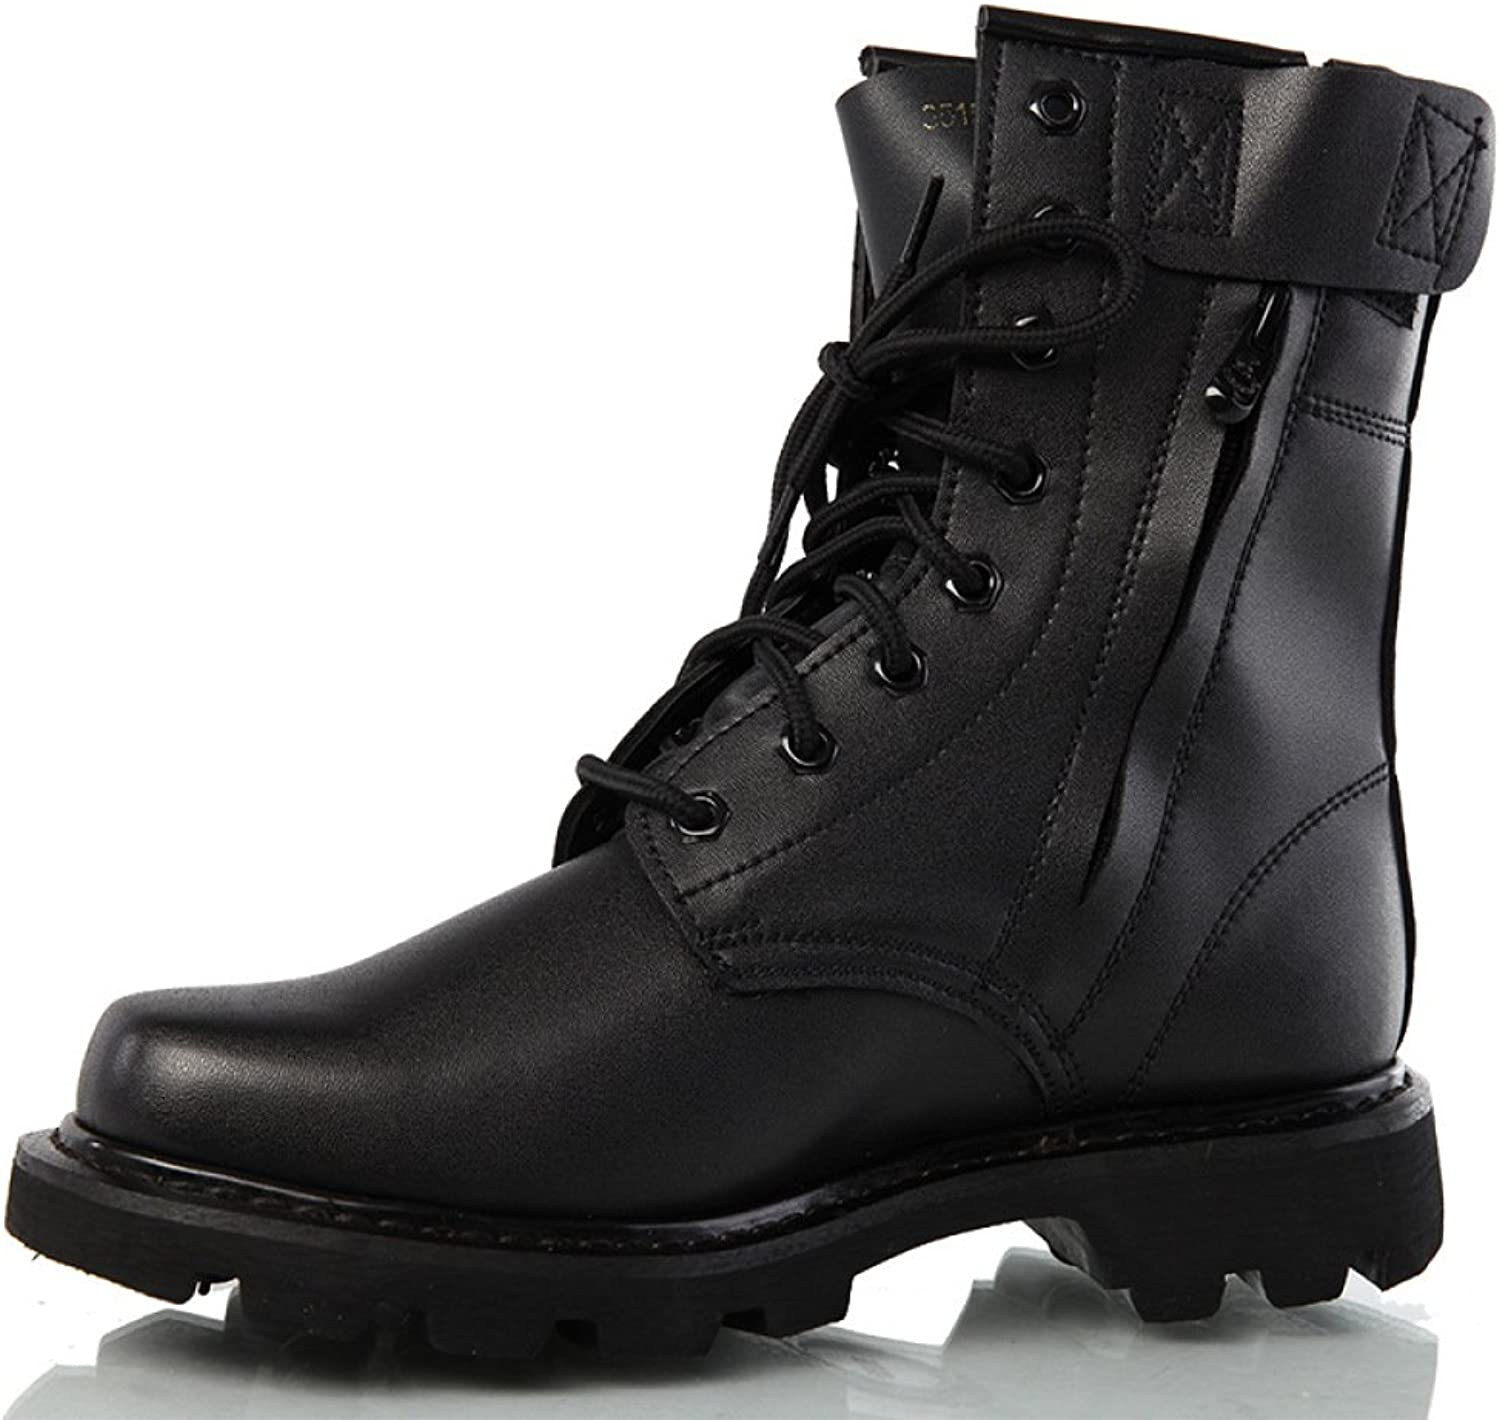 LINYI Boots Male Special Forces Martin Boots Tooling Desert Combat Boots